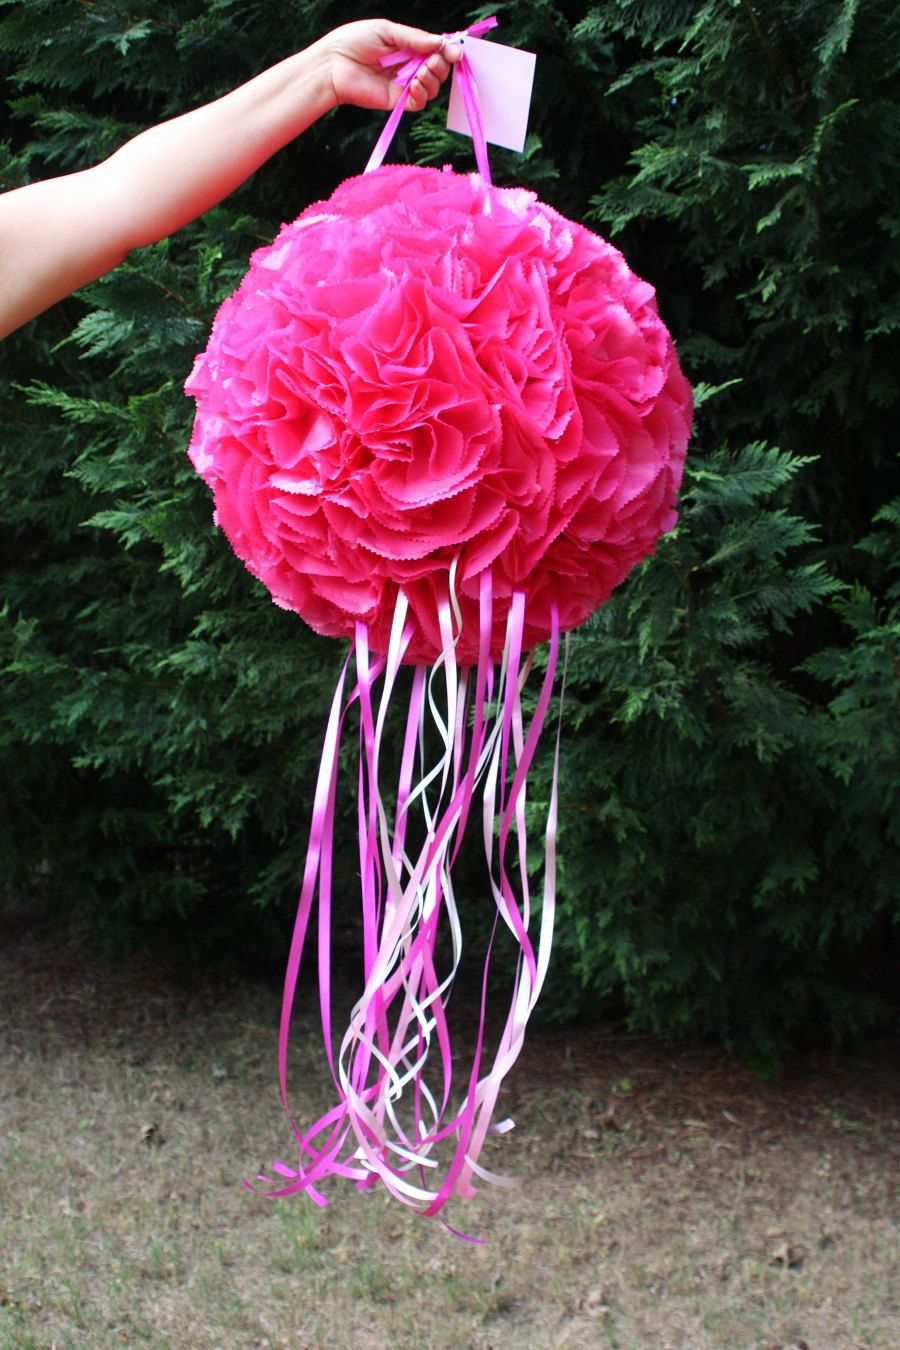 Bring Out The Kid In Everyone W A Beautiful Flower Pinata For A